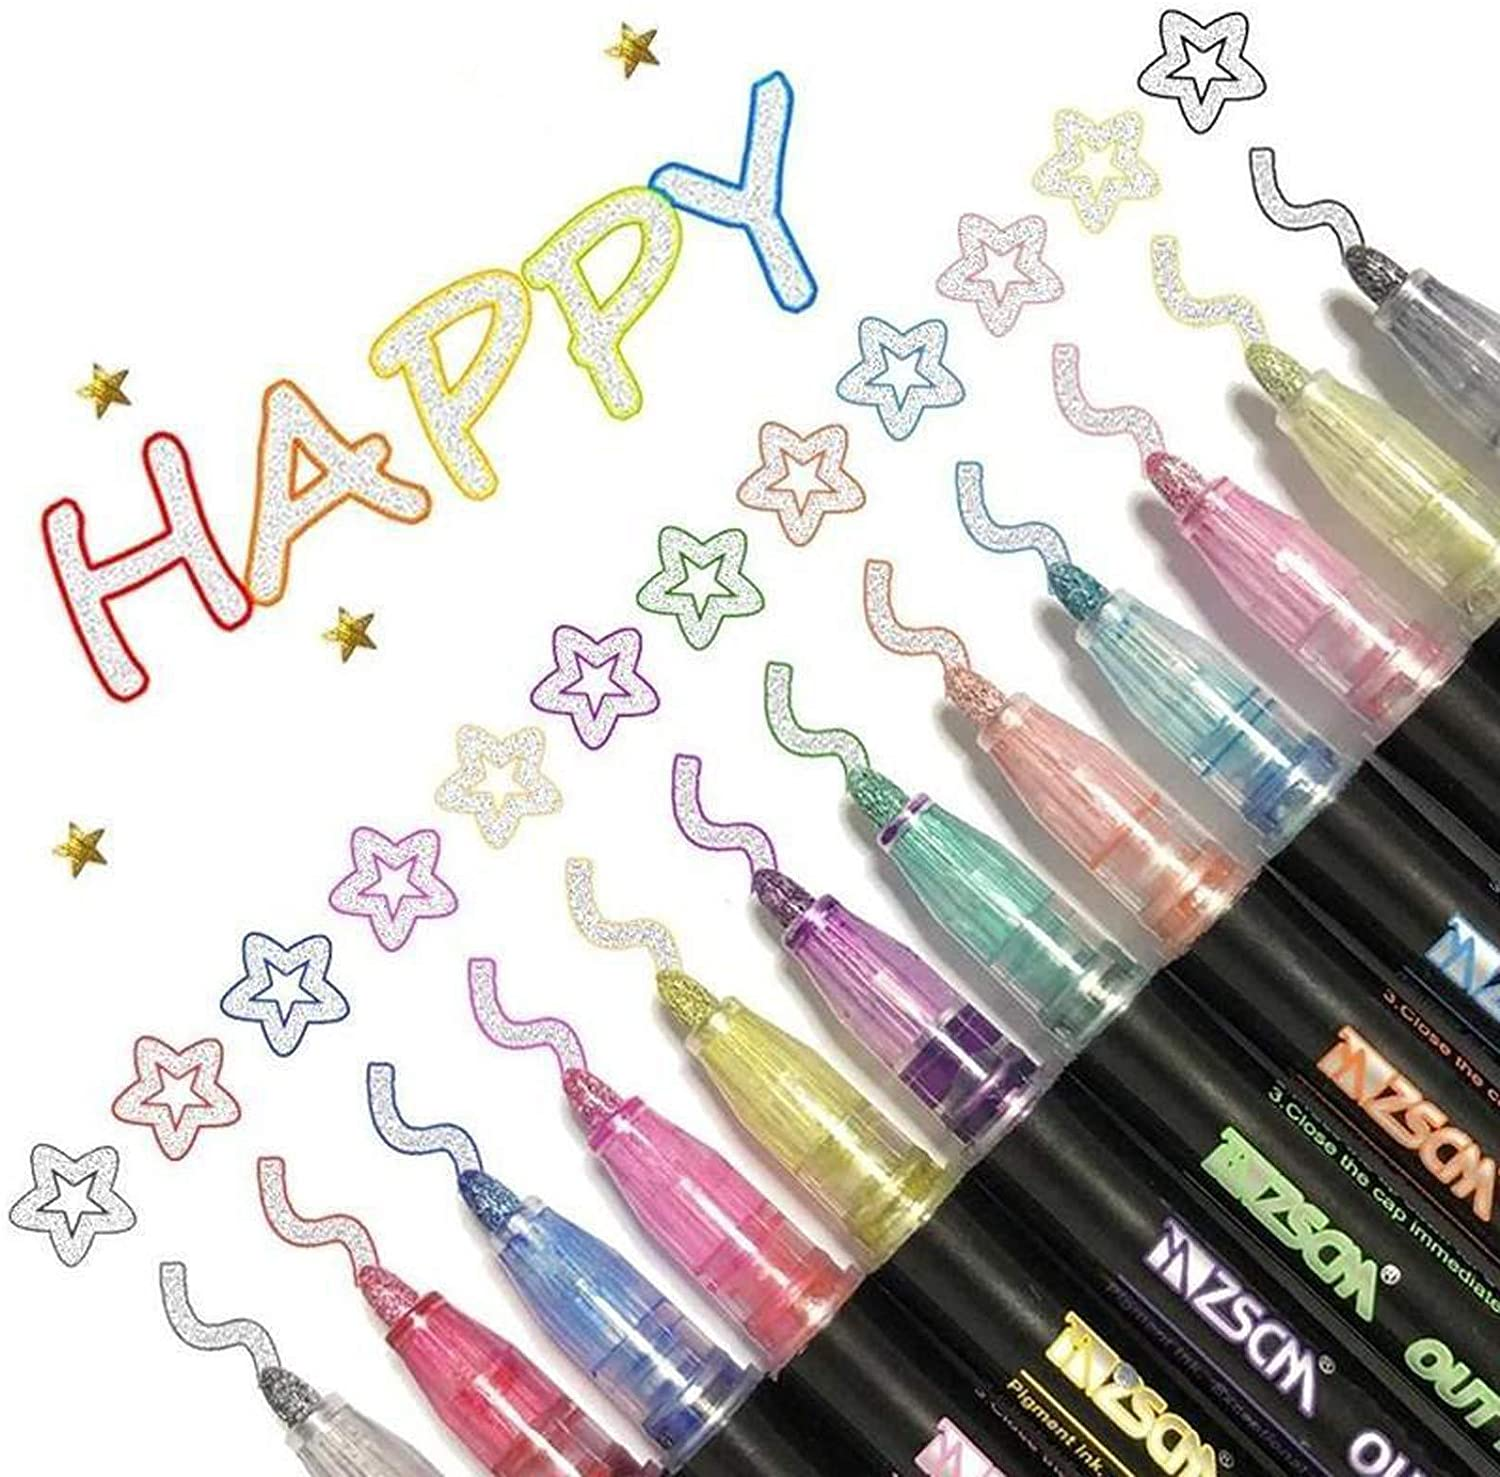 12 Colors Self Outline Metallic Markers, Double Line Outline Pen Markers, Doodle Dazzles Shimmer Marker Set, Marker Pen for Highlight, Makers Pens for Art, Drawing, DIY Greeting Cards (12 Colors)